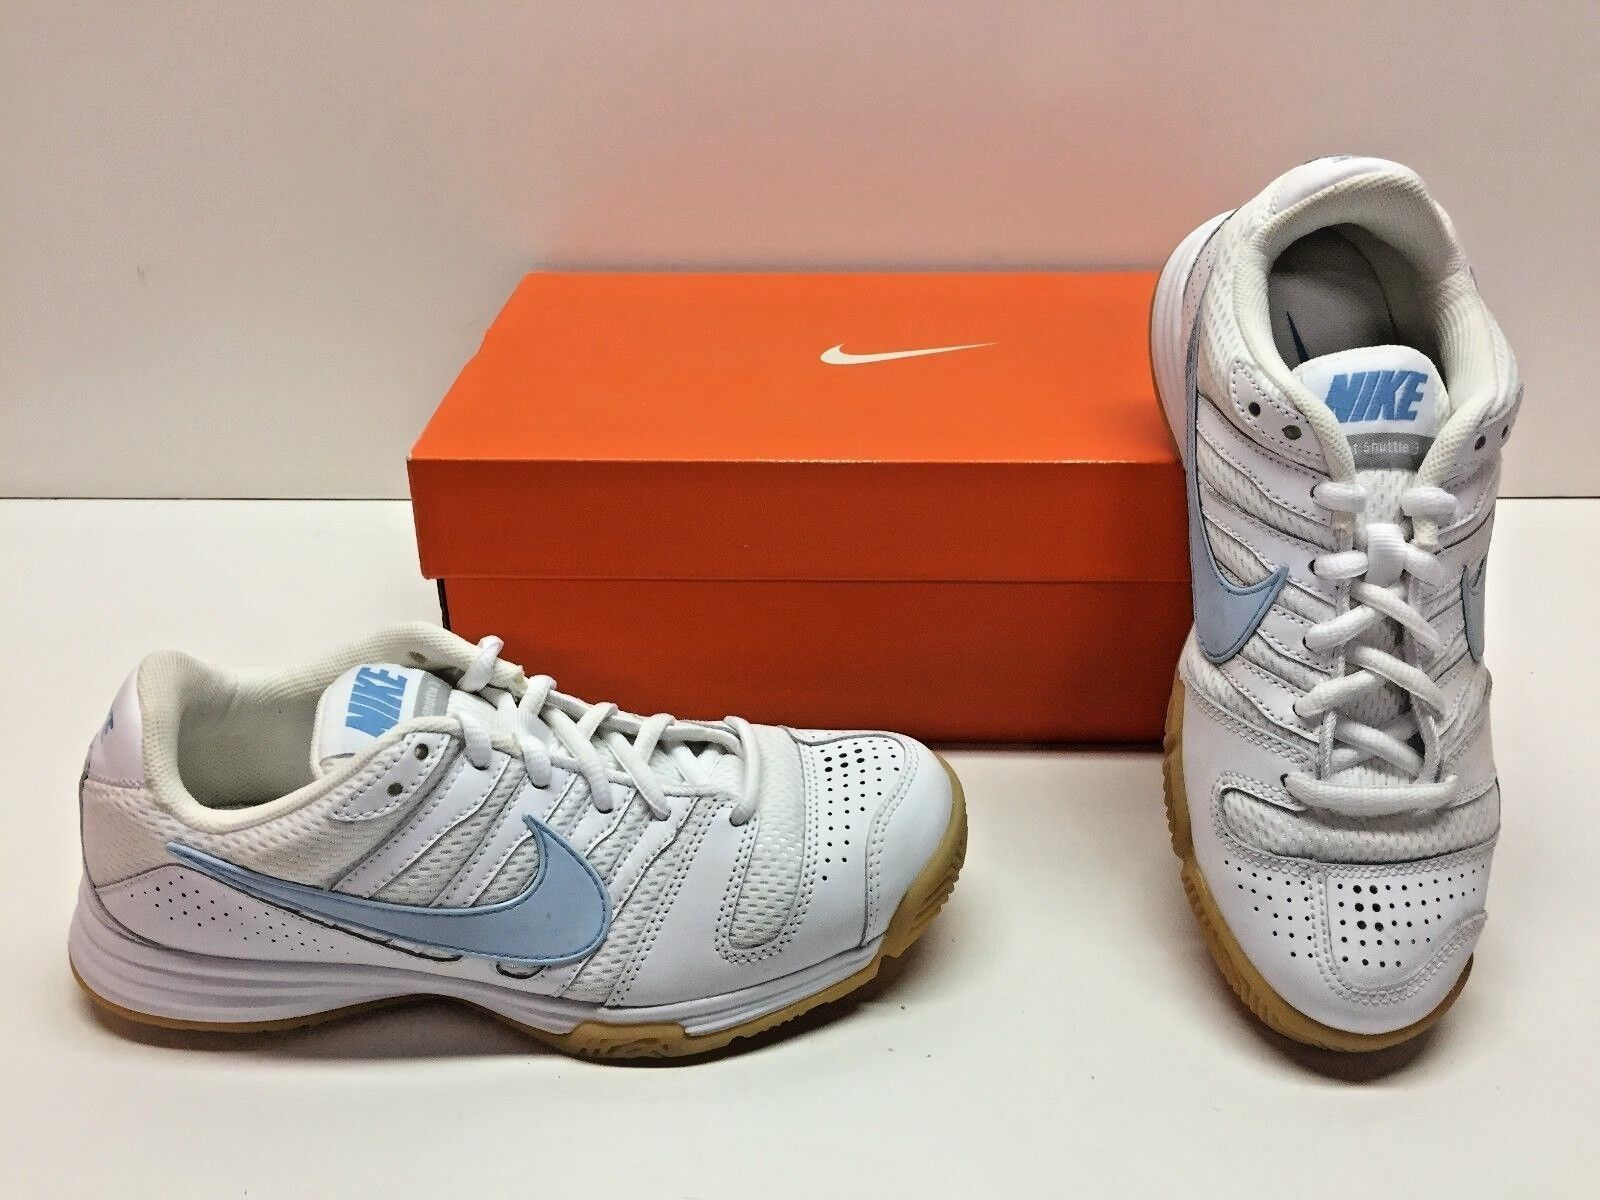 Nike Court Shuttle III Training White Indoor Court Sneakers Shoes Womens 5.5